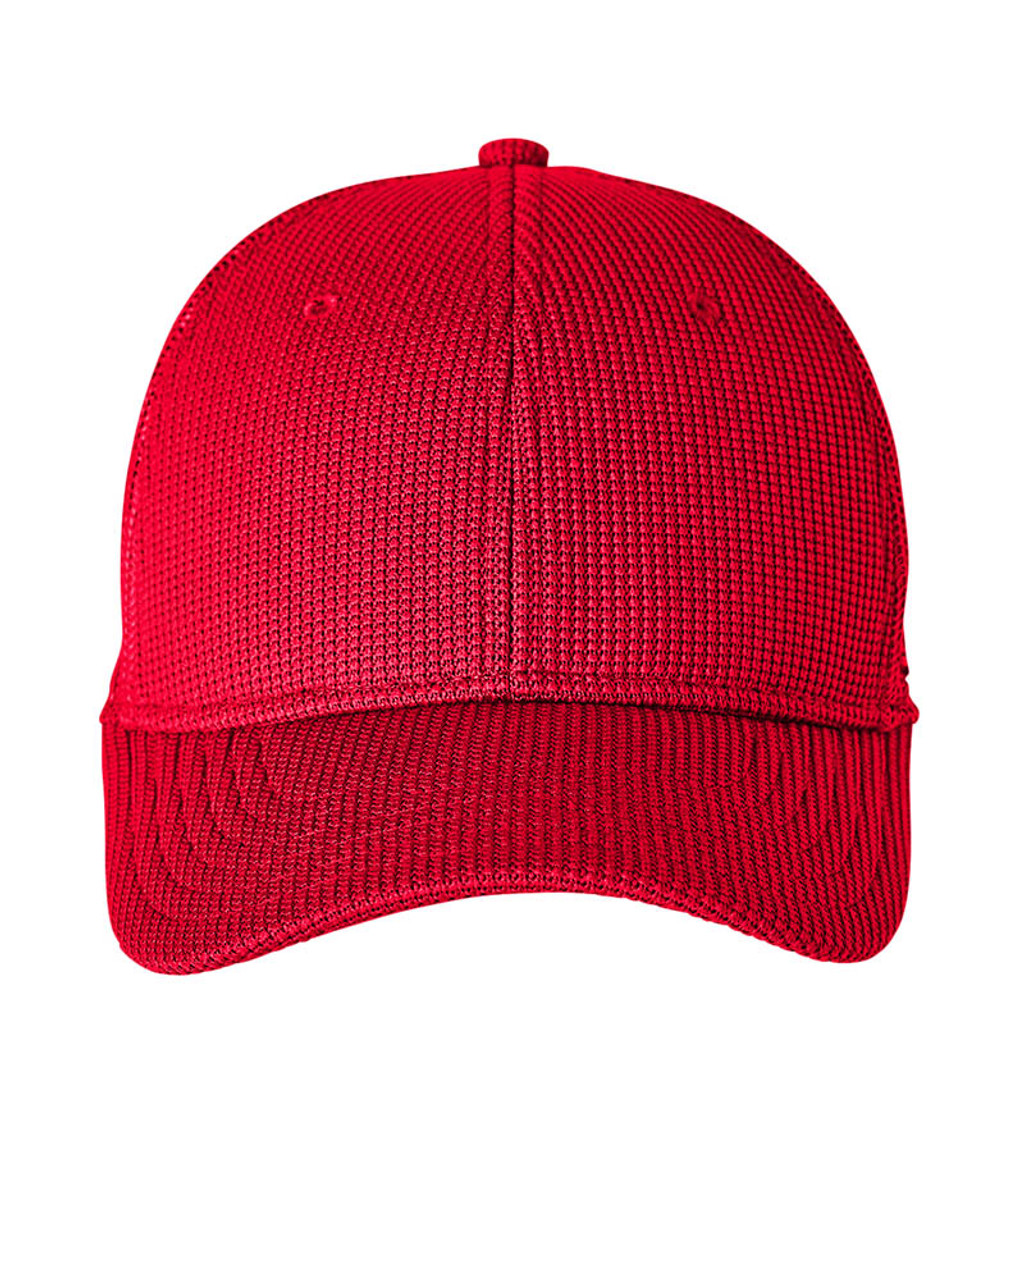 Red - Front, SH16791 Spyder Adult Constant Sweater Trucker Cap   BlankClothing.ca